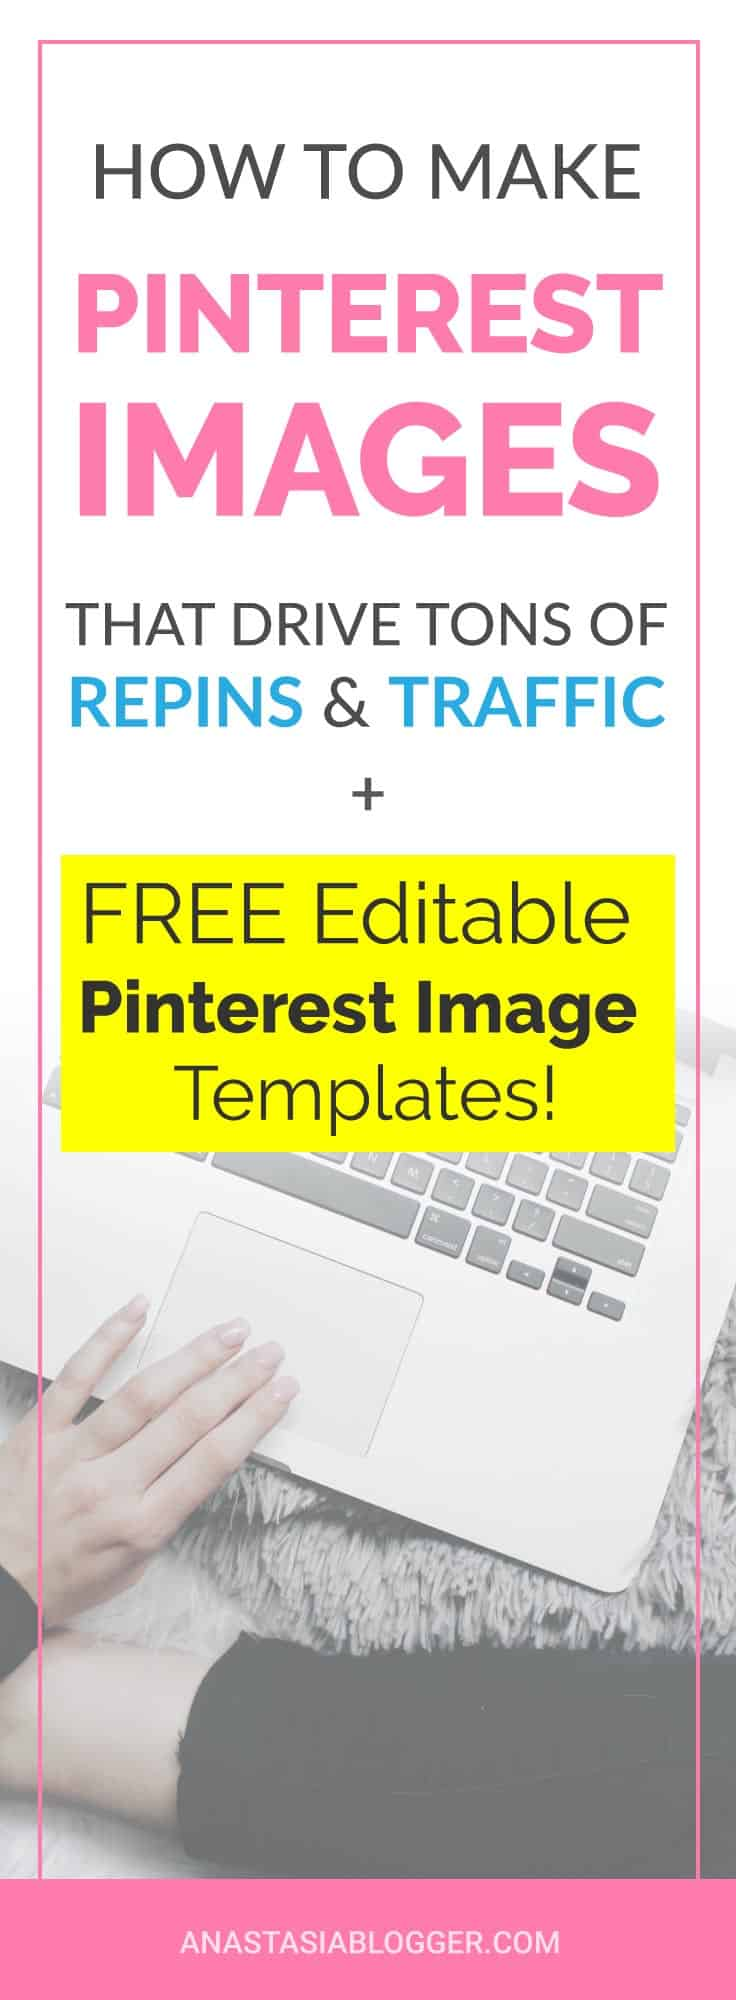 How to make Pinterest Images that Drive Tons of Repins and Traffic. FREE Pinterest Image Templates! Ideal Pinterest Images Size, Pinterest Image Tips.